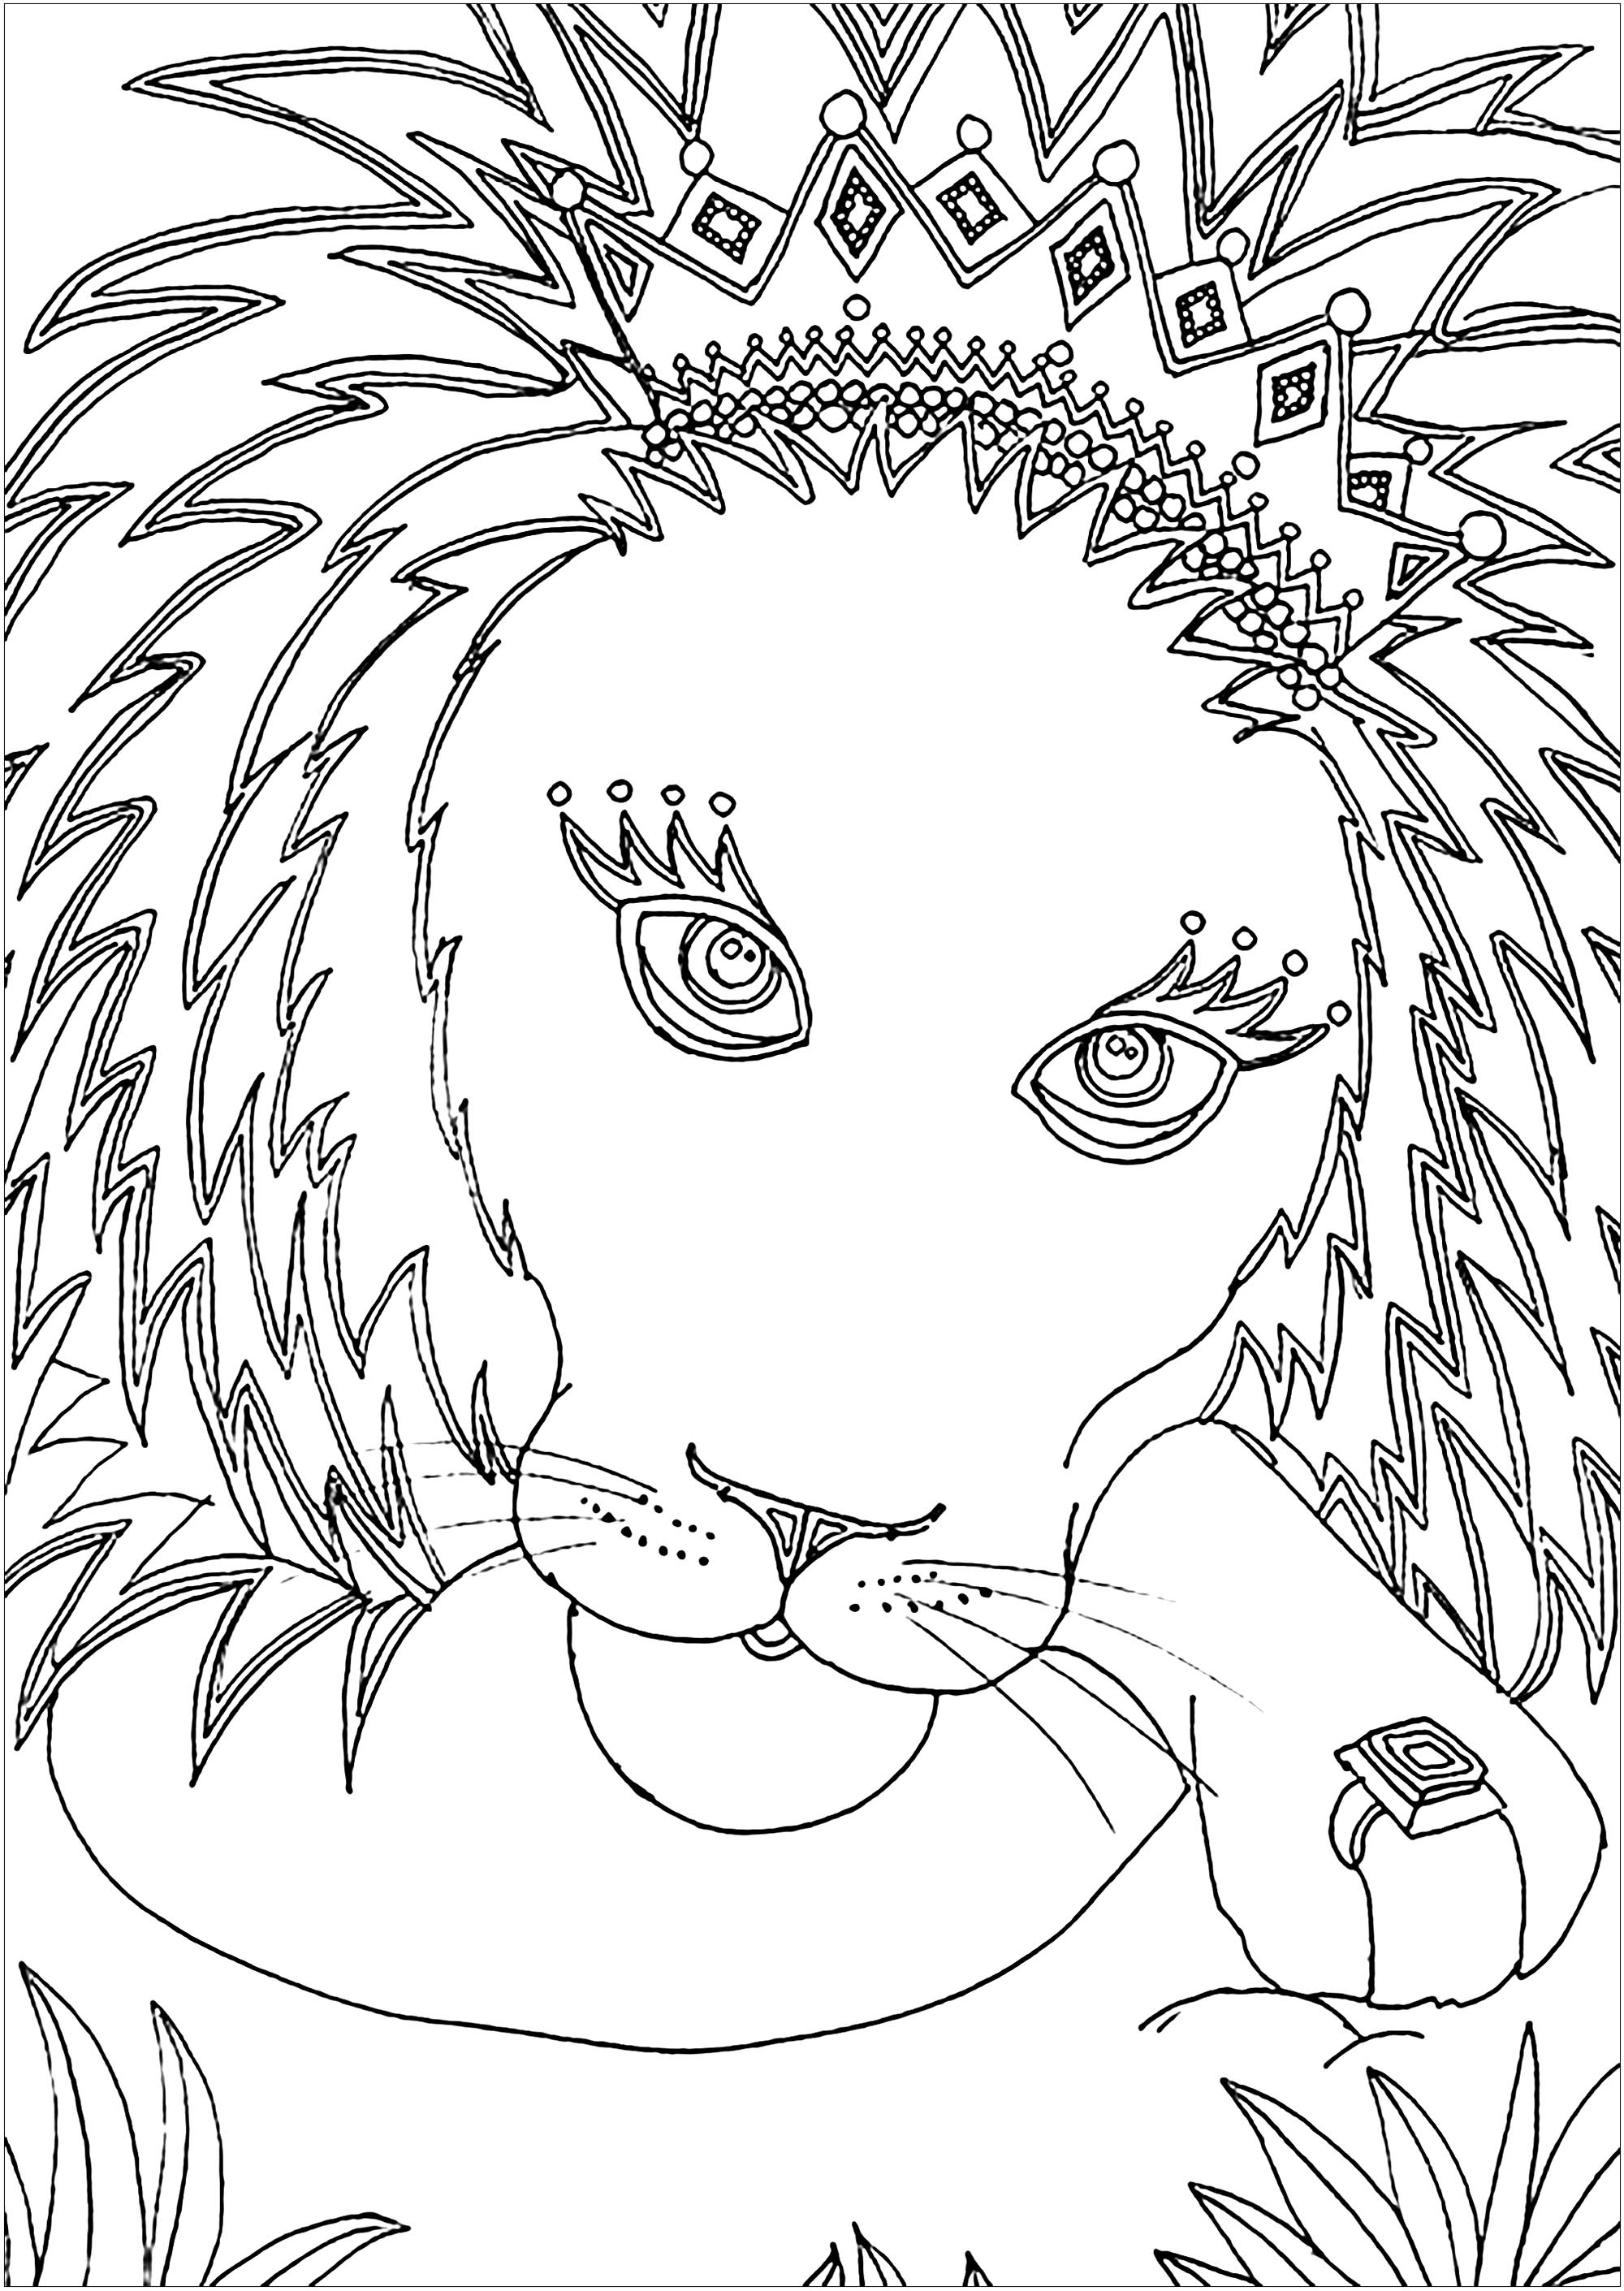 picture of lion coloring page lion to download lion kids coloring pages of picture lion page coloring